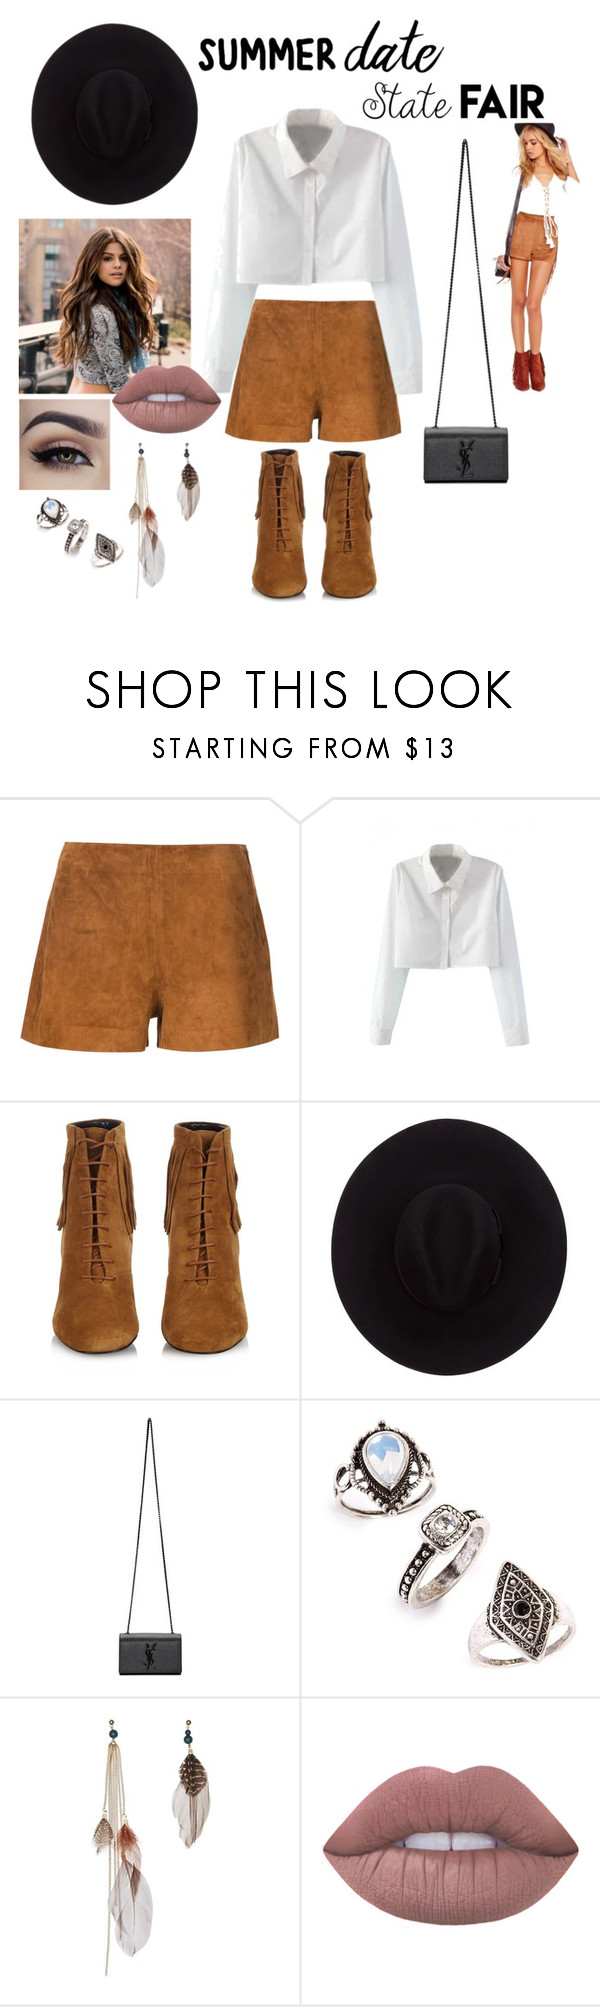 """Untitled #47"" by lilbaby32 ❤ liked on Polyvore featuring rag & bone, WithChic, Yves Saint Laurent, Brixton, Topshop, Lime Crime, statefair and summerdate"